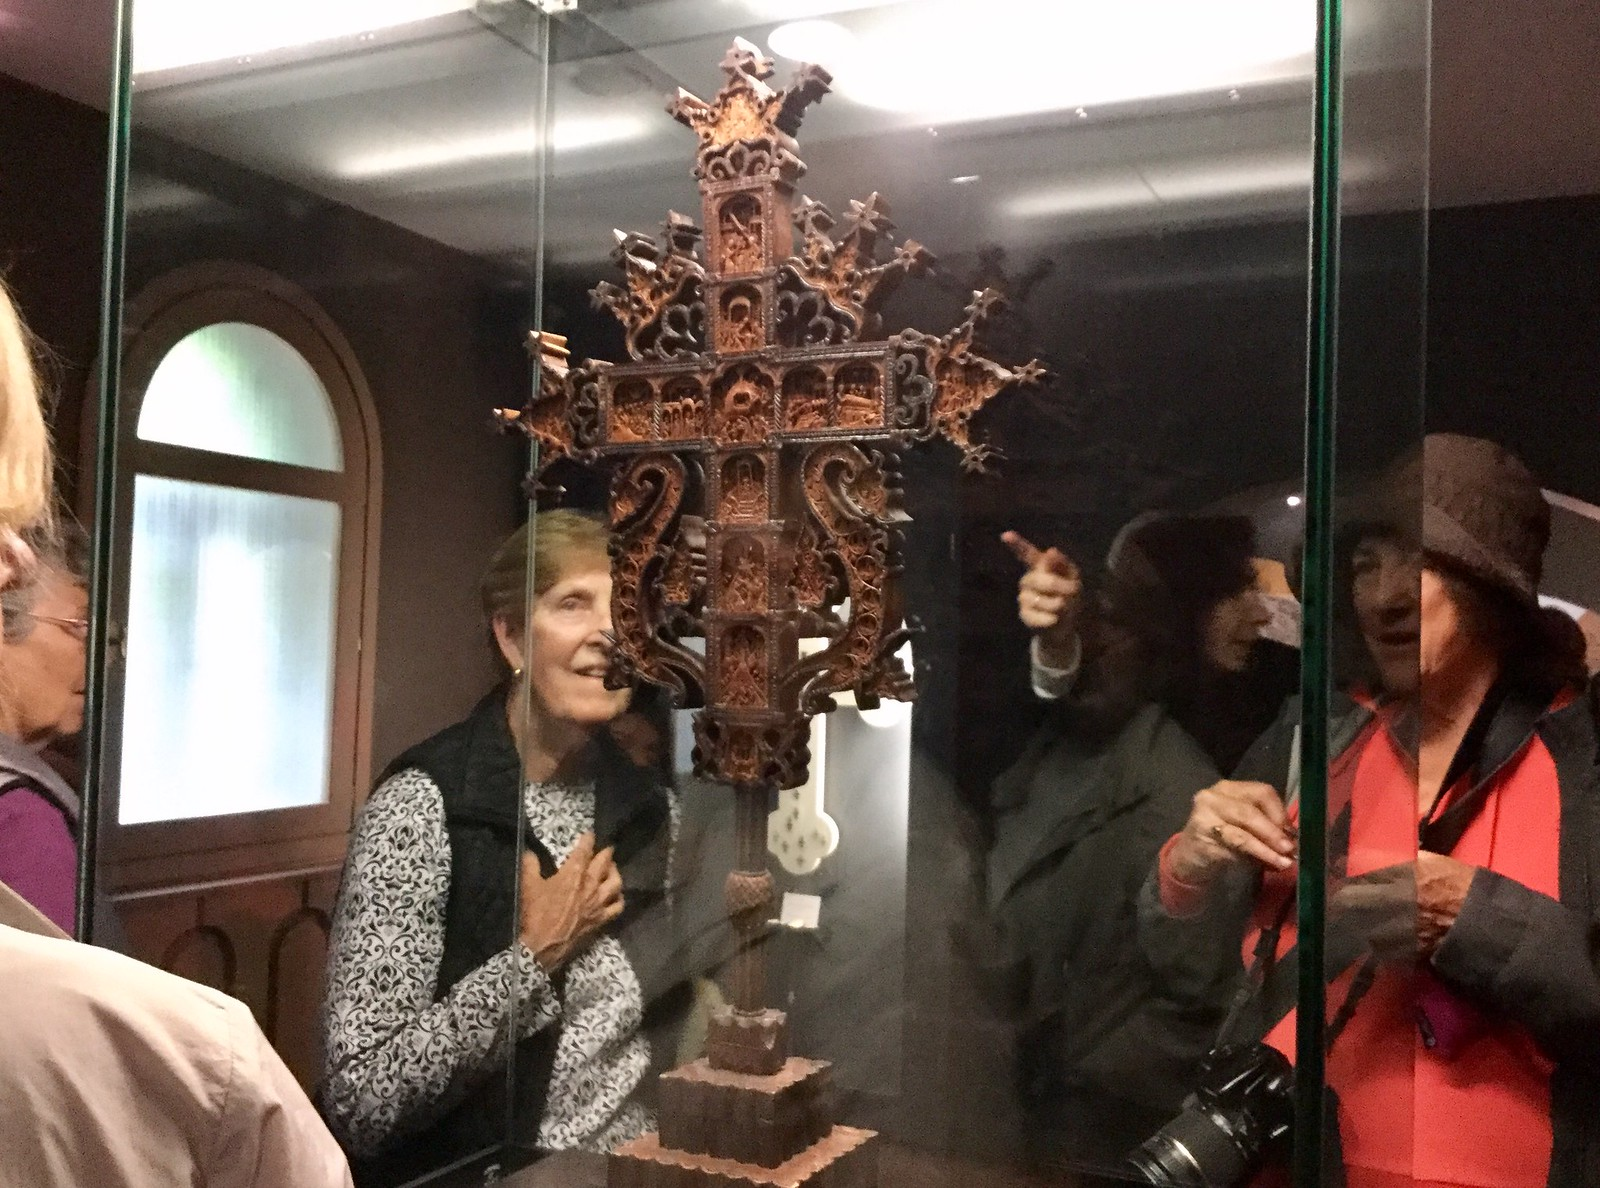 201705 - Balkans - Hand-Carved Cross - 47 of 101 - Rila Monastery - Rilski manastir, May 26, 2017